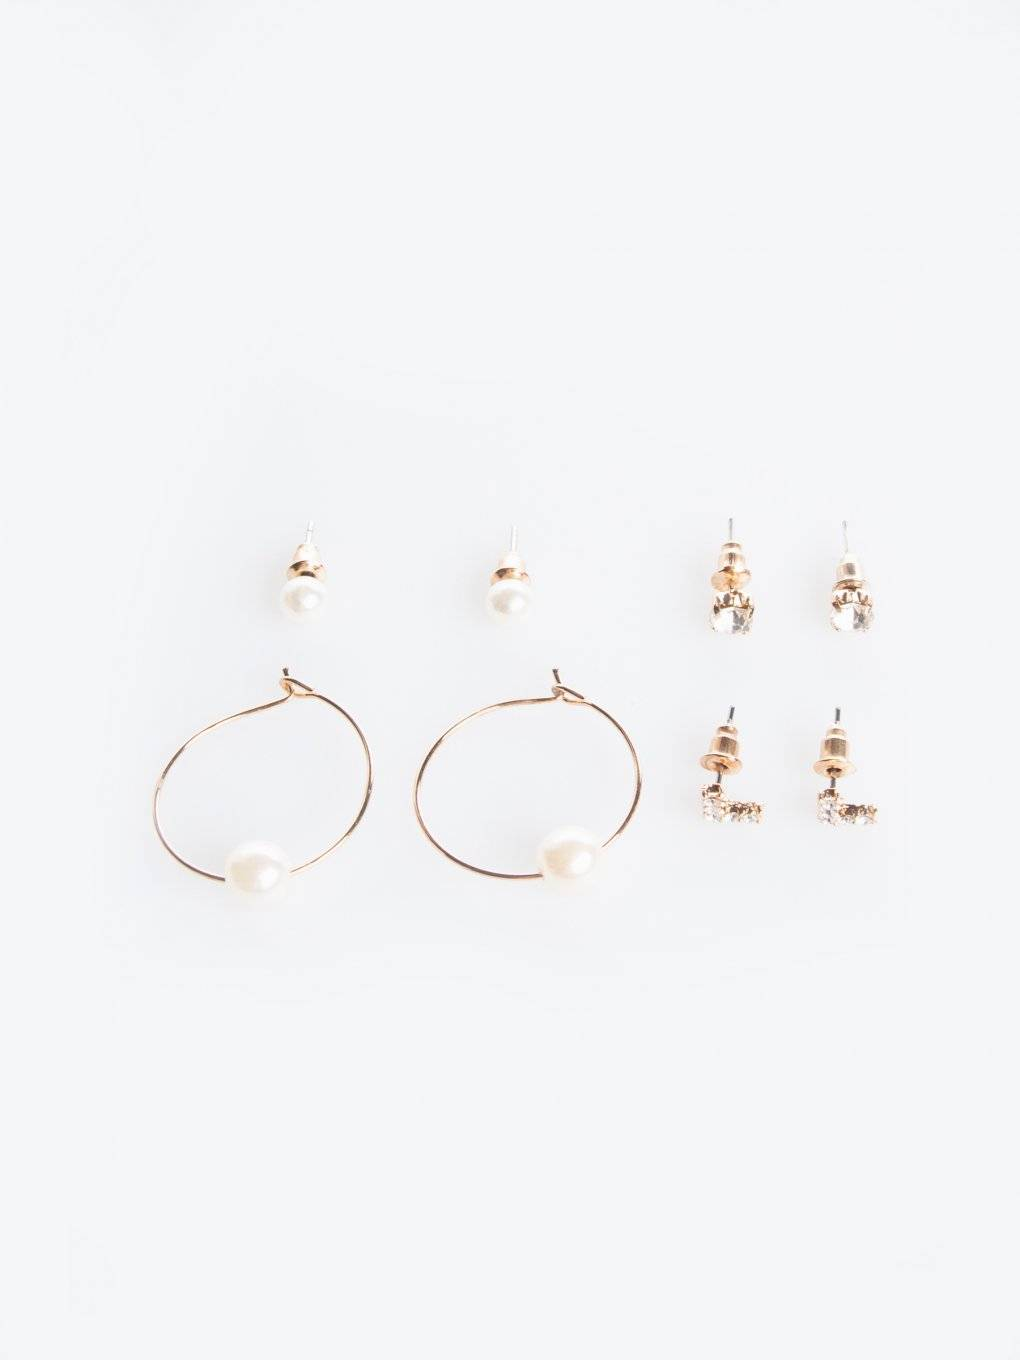 4-pack of earrings